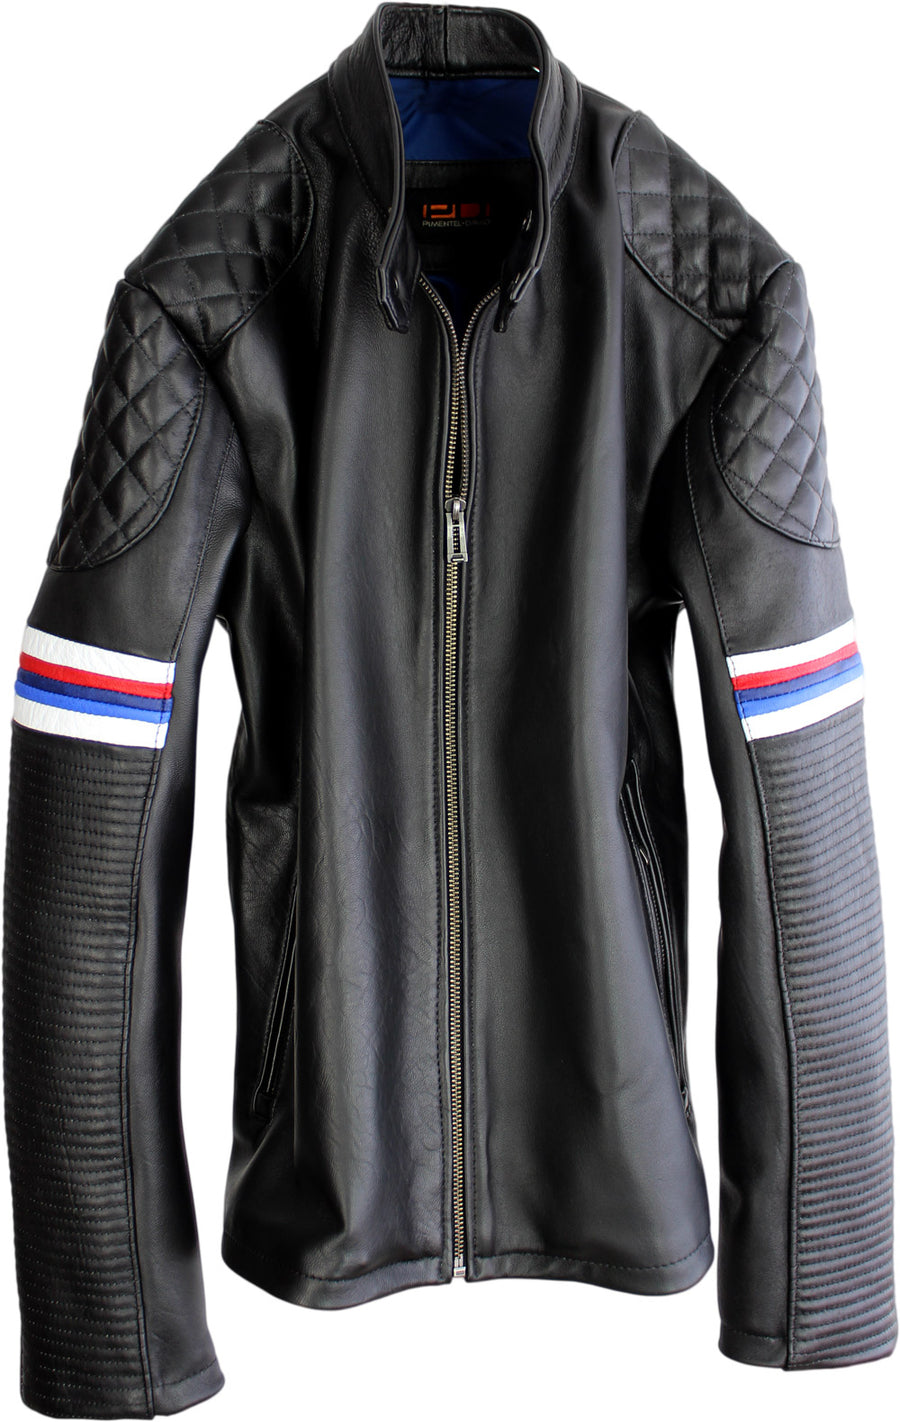 M3 Leather Jacket Black - BMW Car Edition Stripes